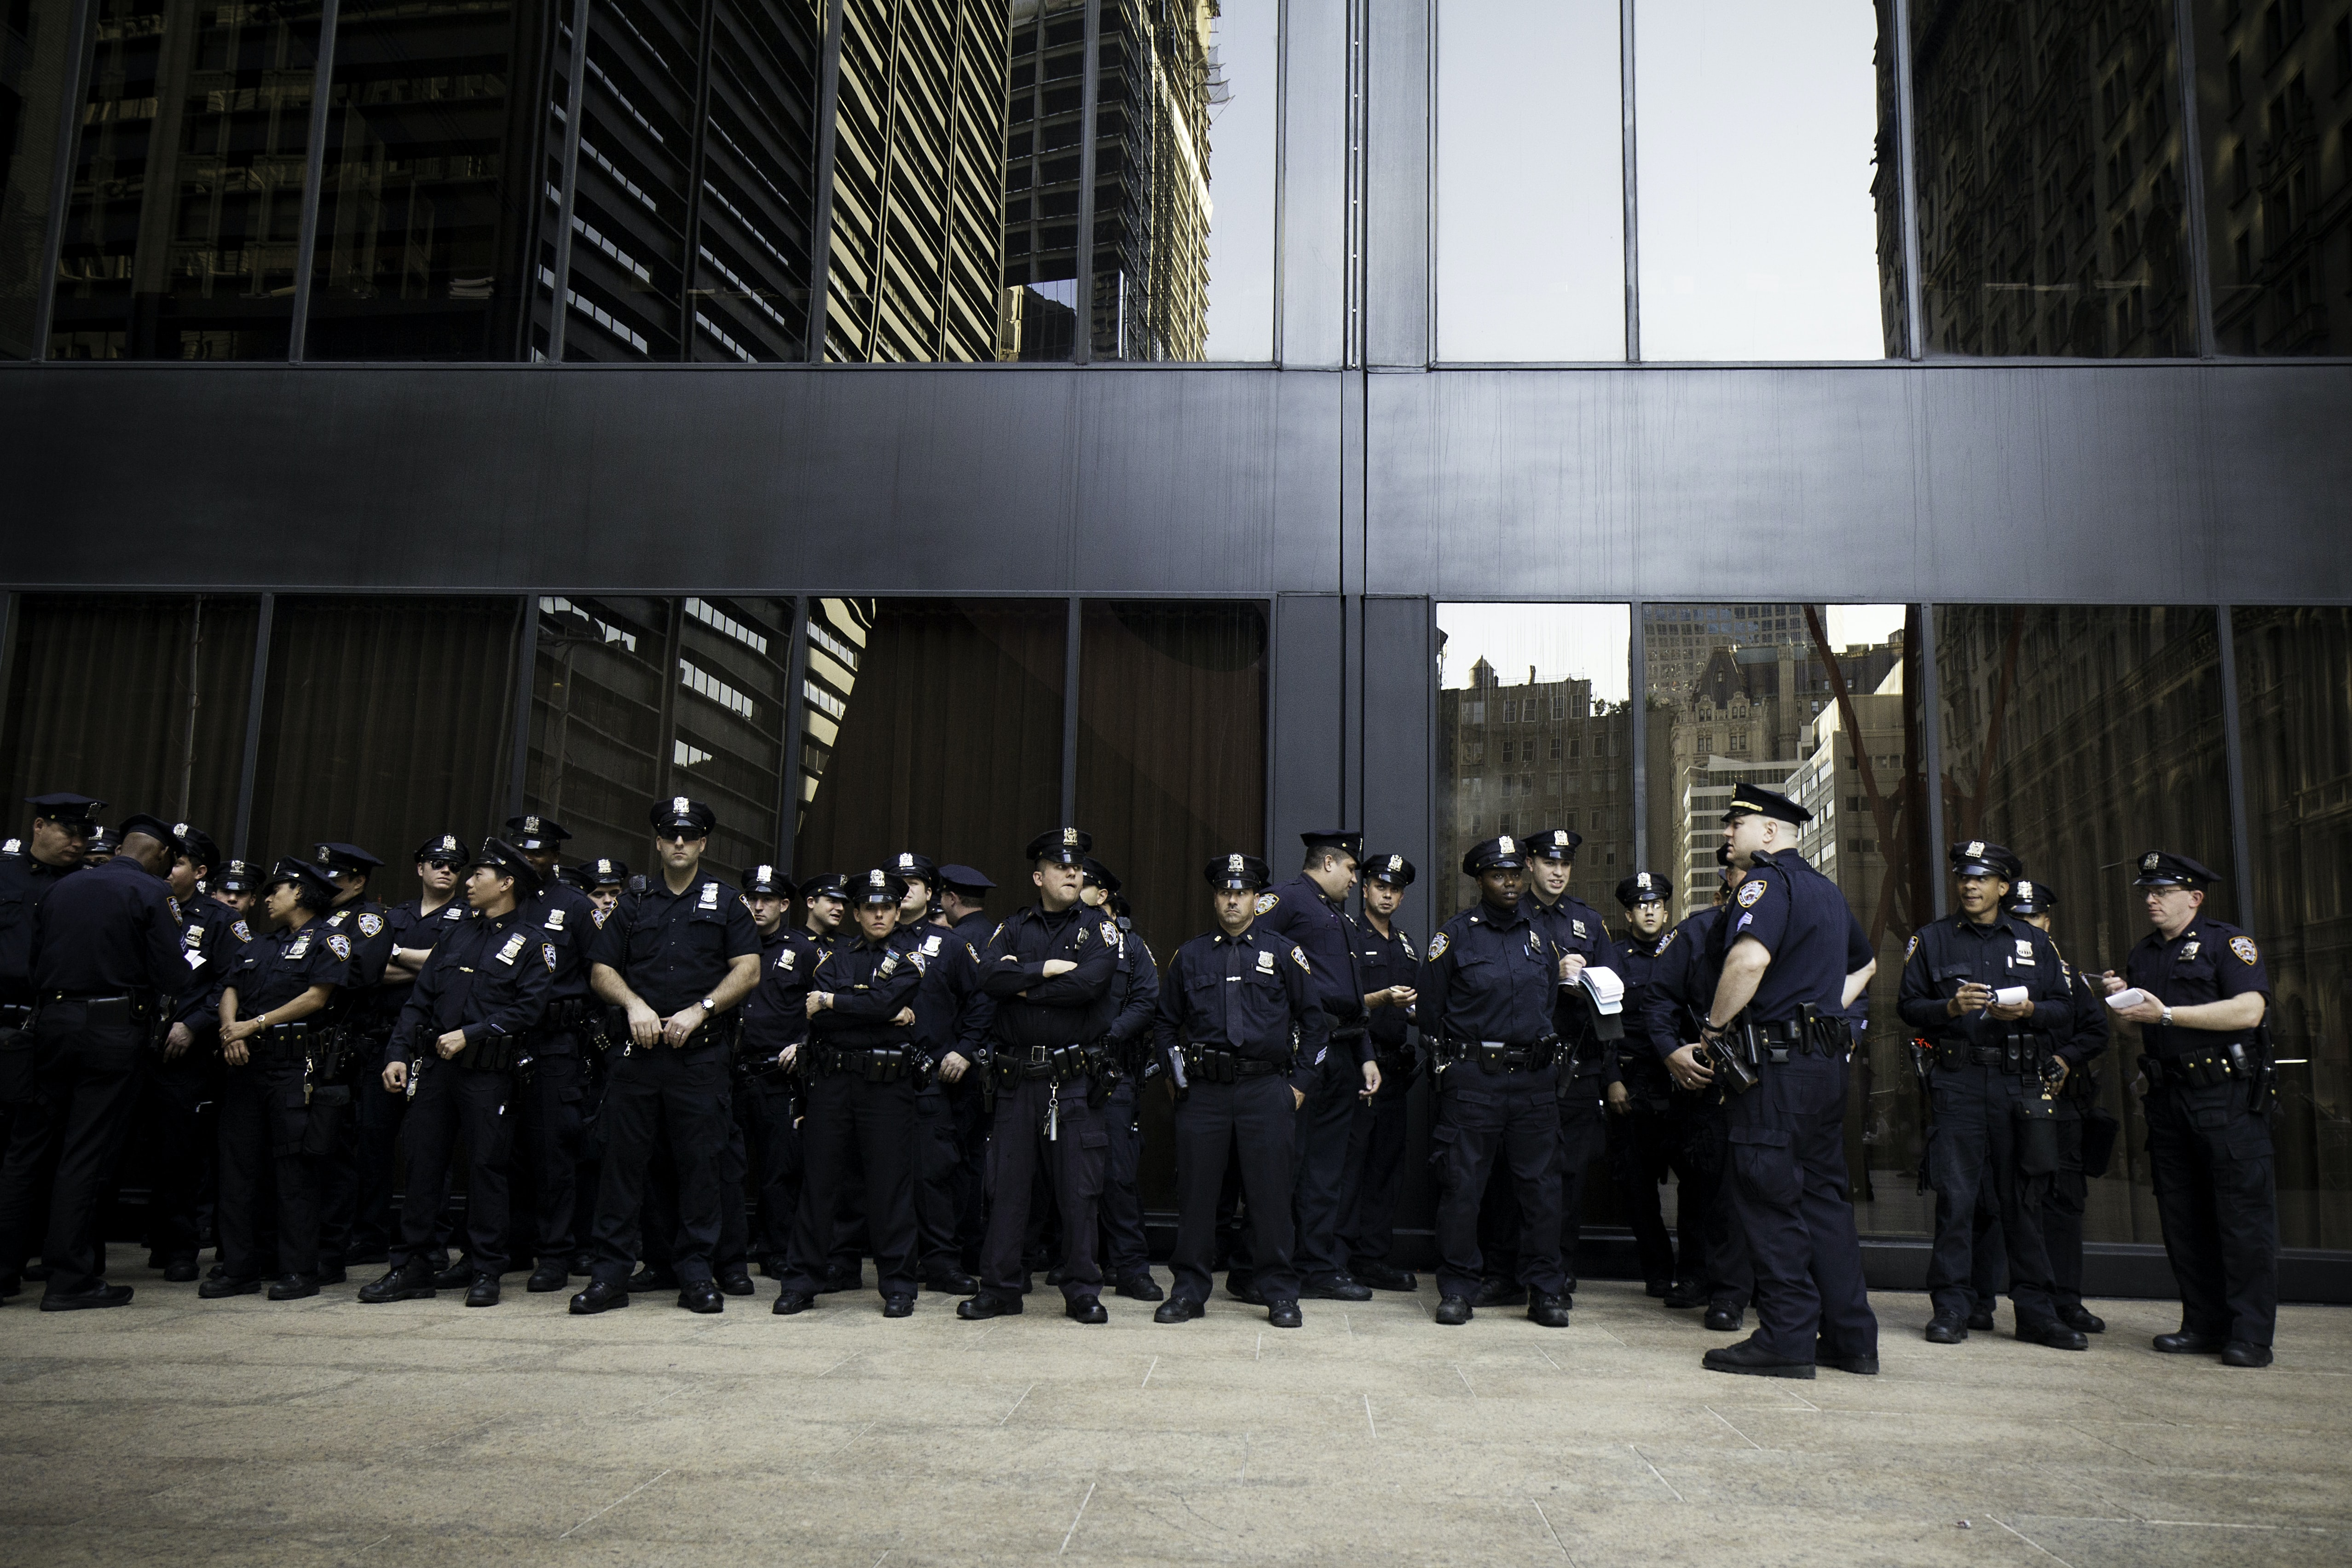 group of police standing near grey building